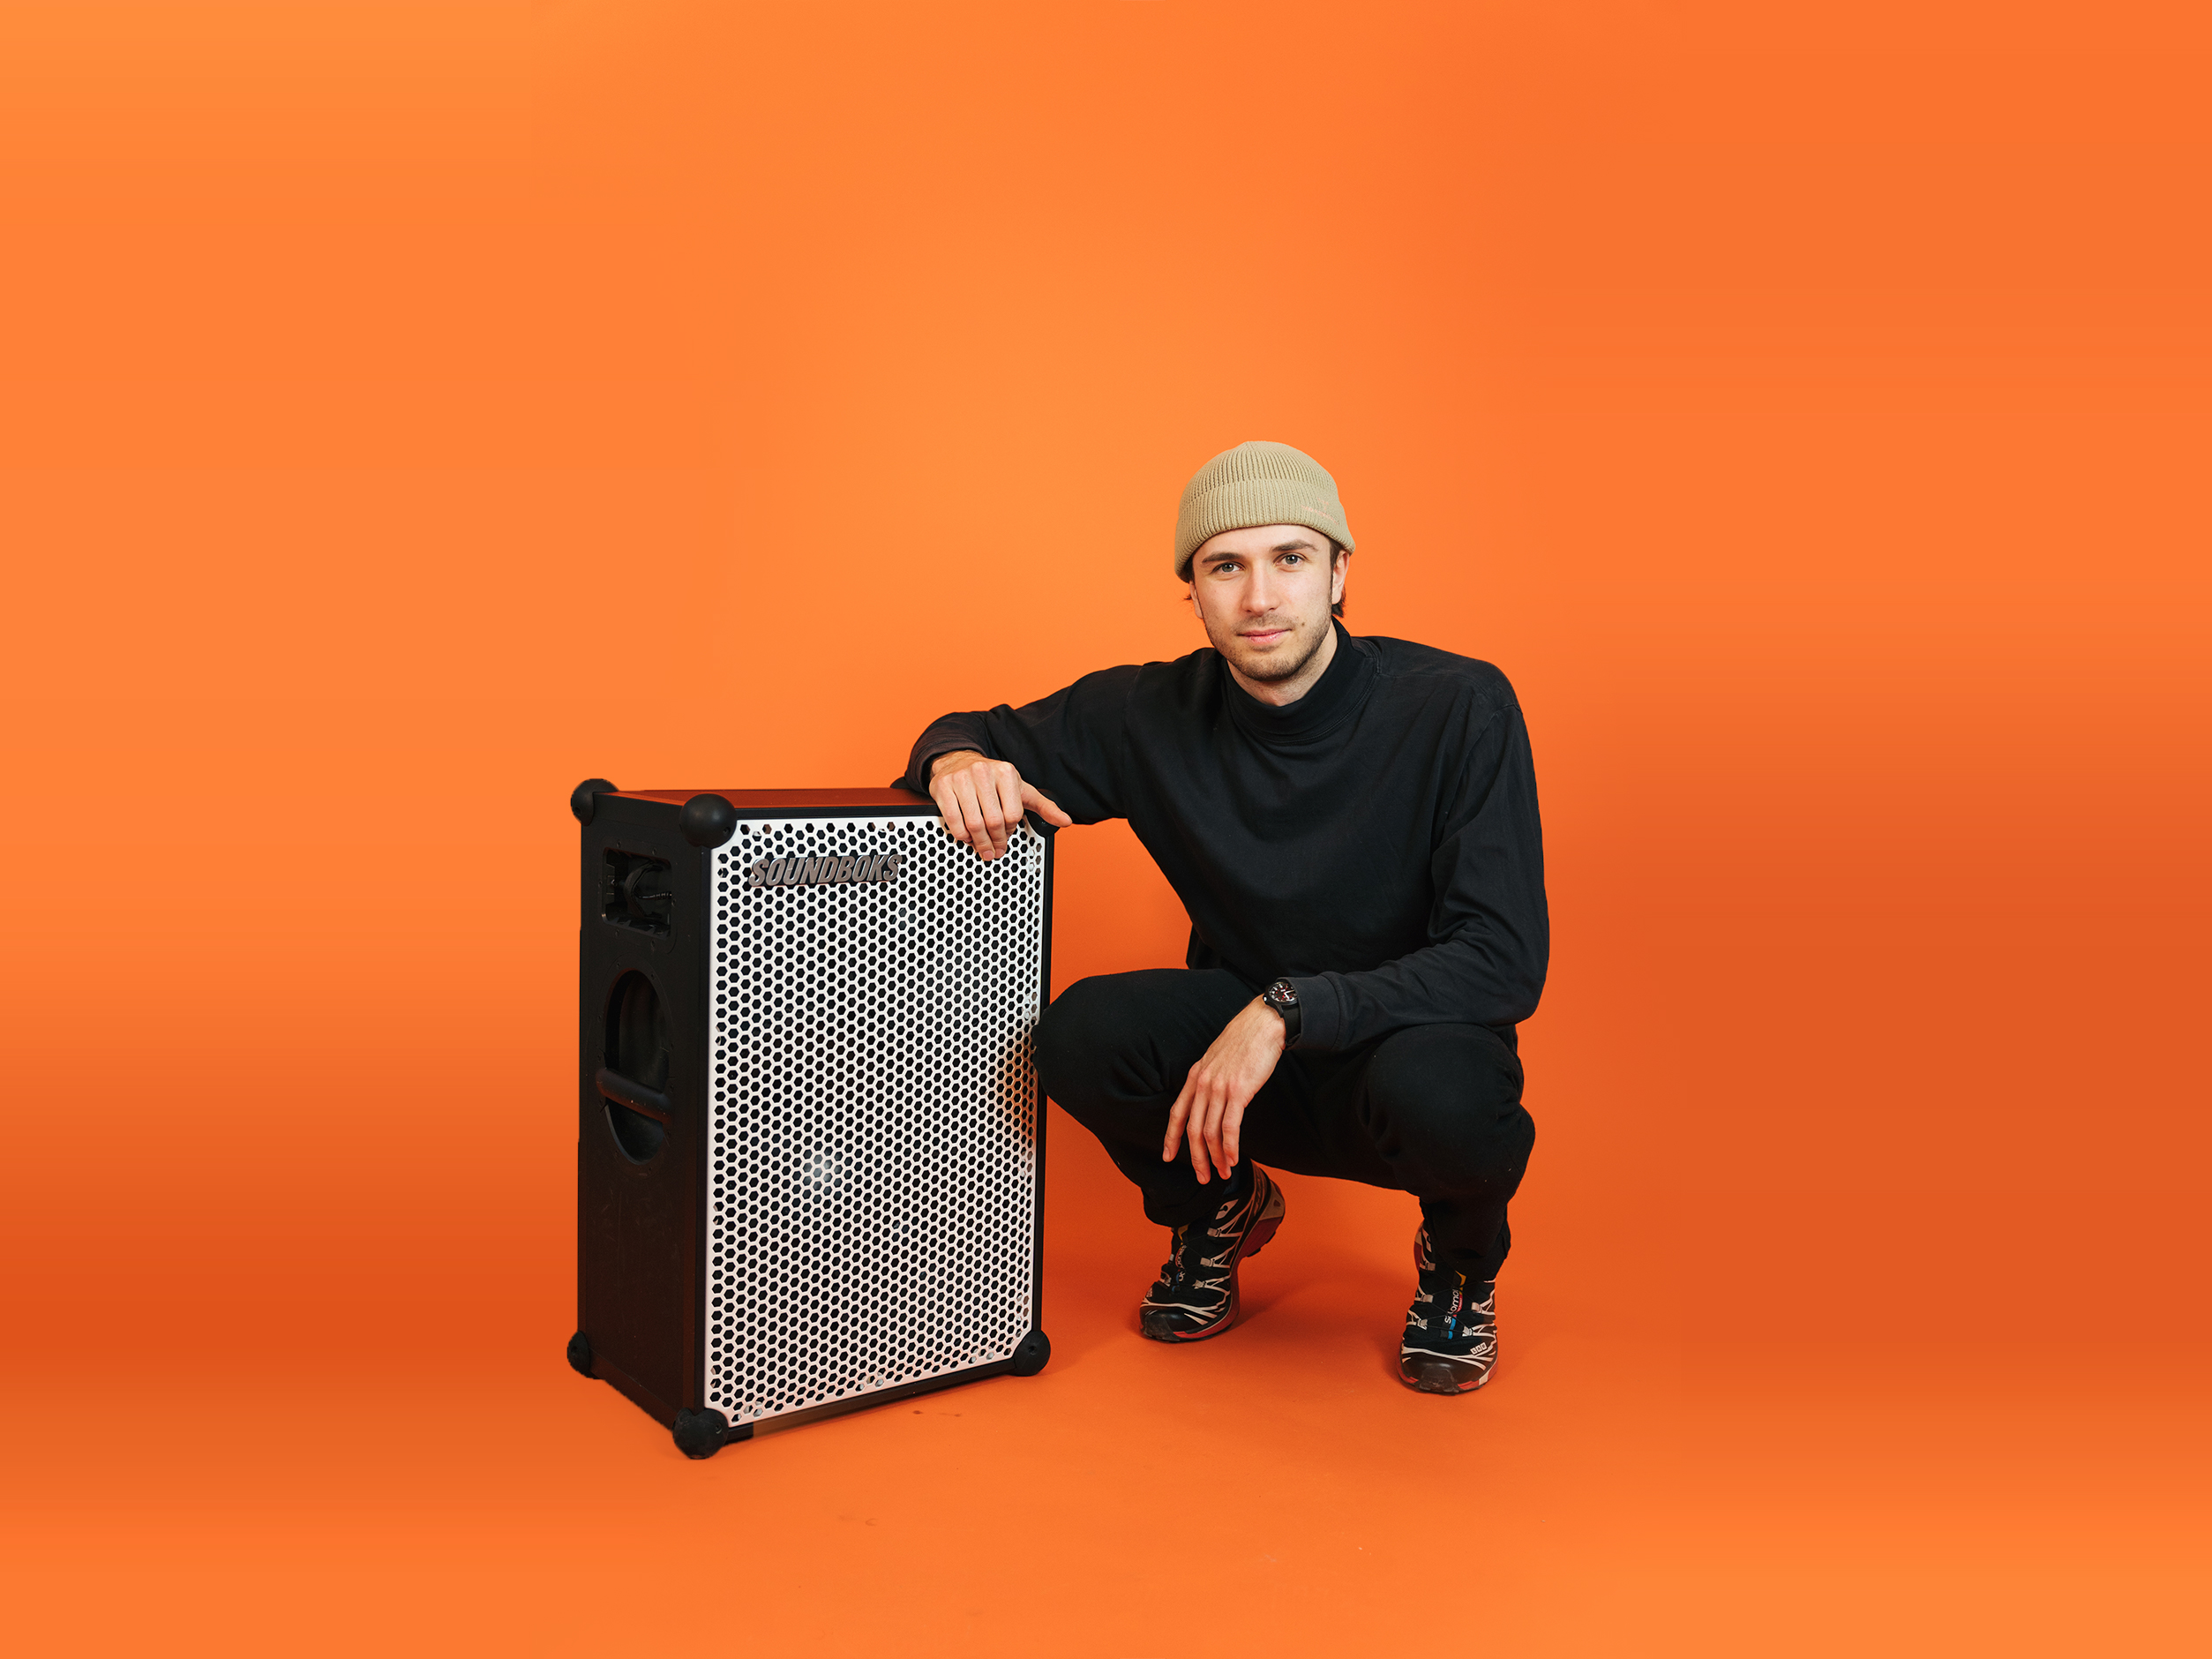 Alfred sitting next to a SOUNDBOKS in front of an orange background